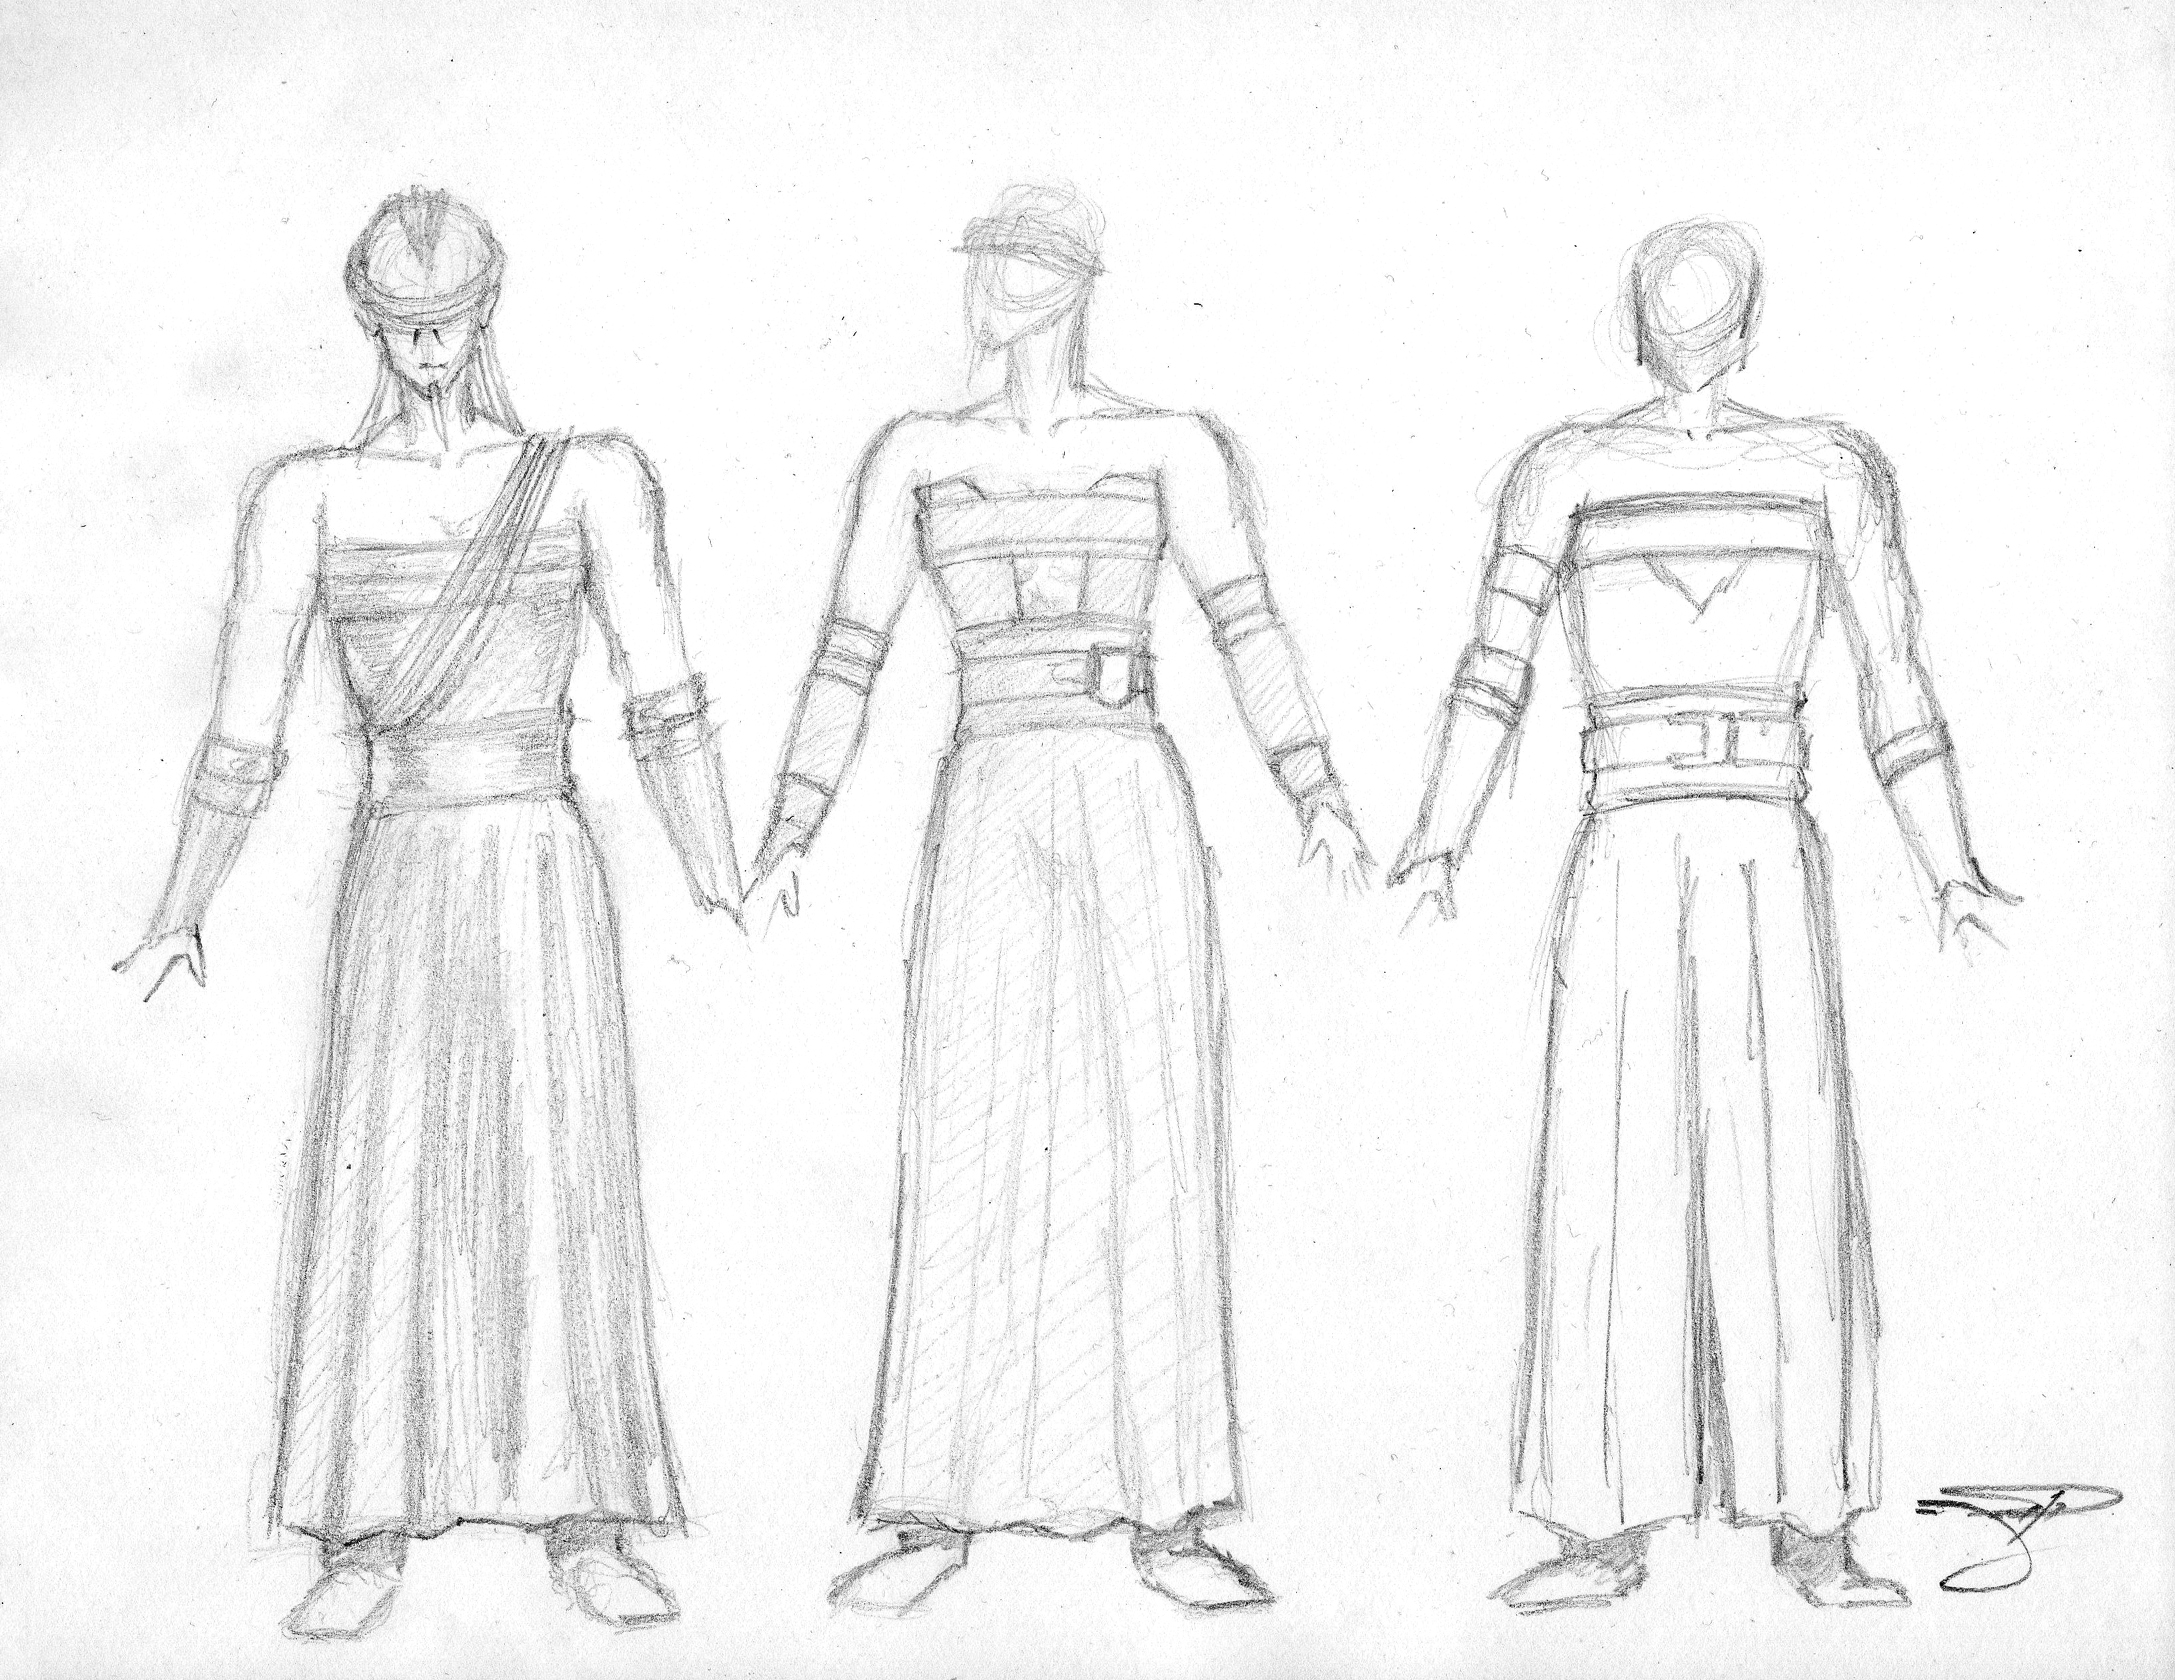 Sith Lord Rough Sketches - Costume I  020